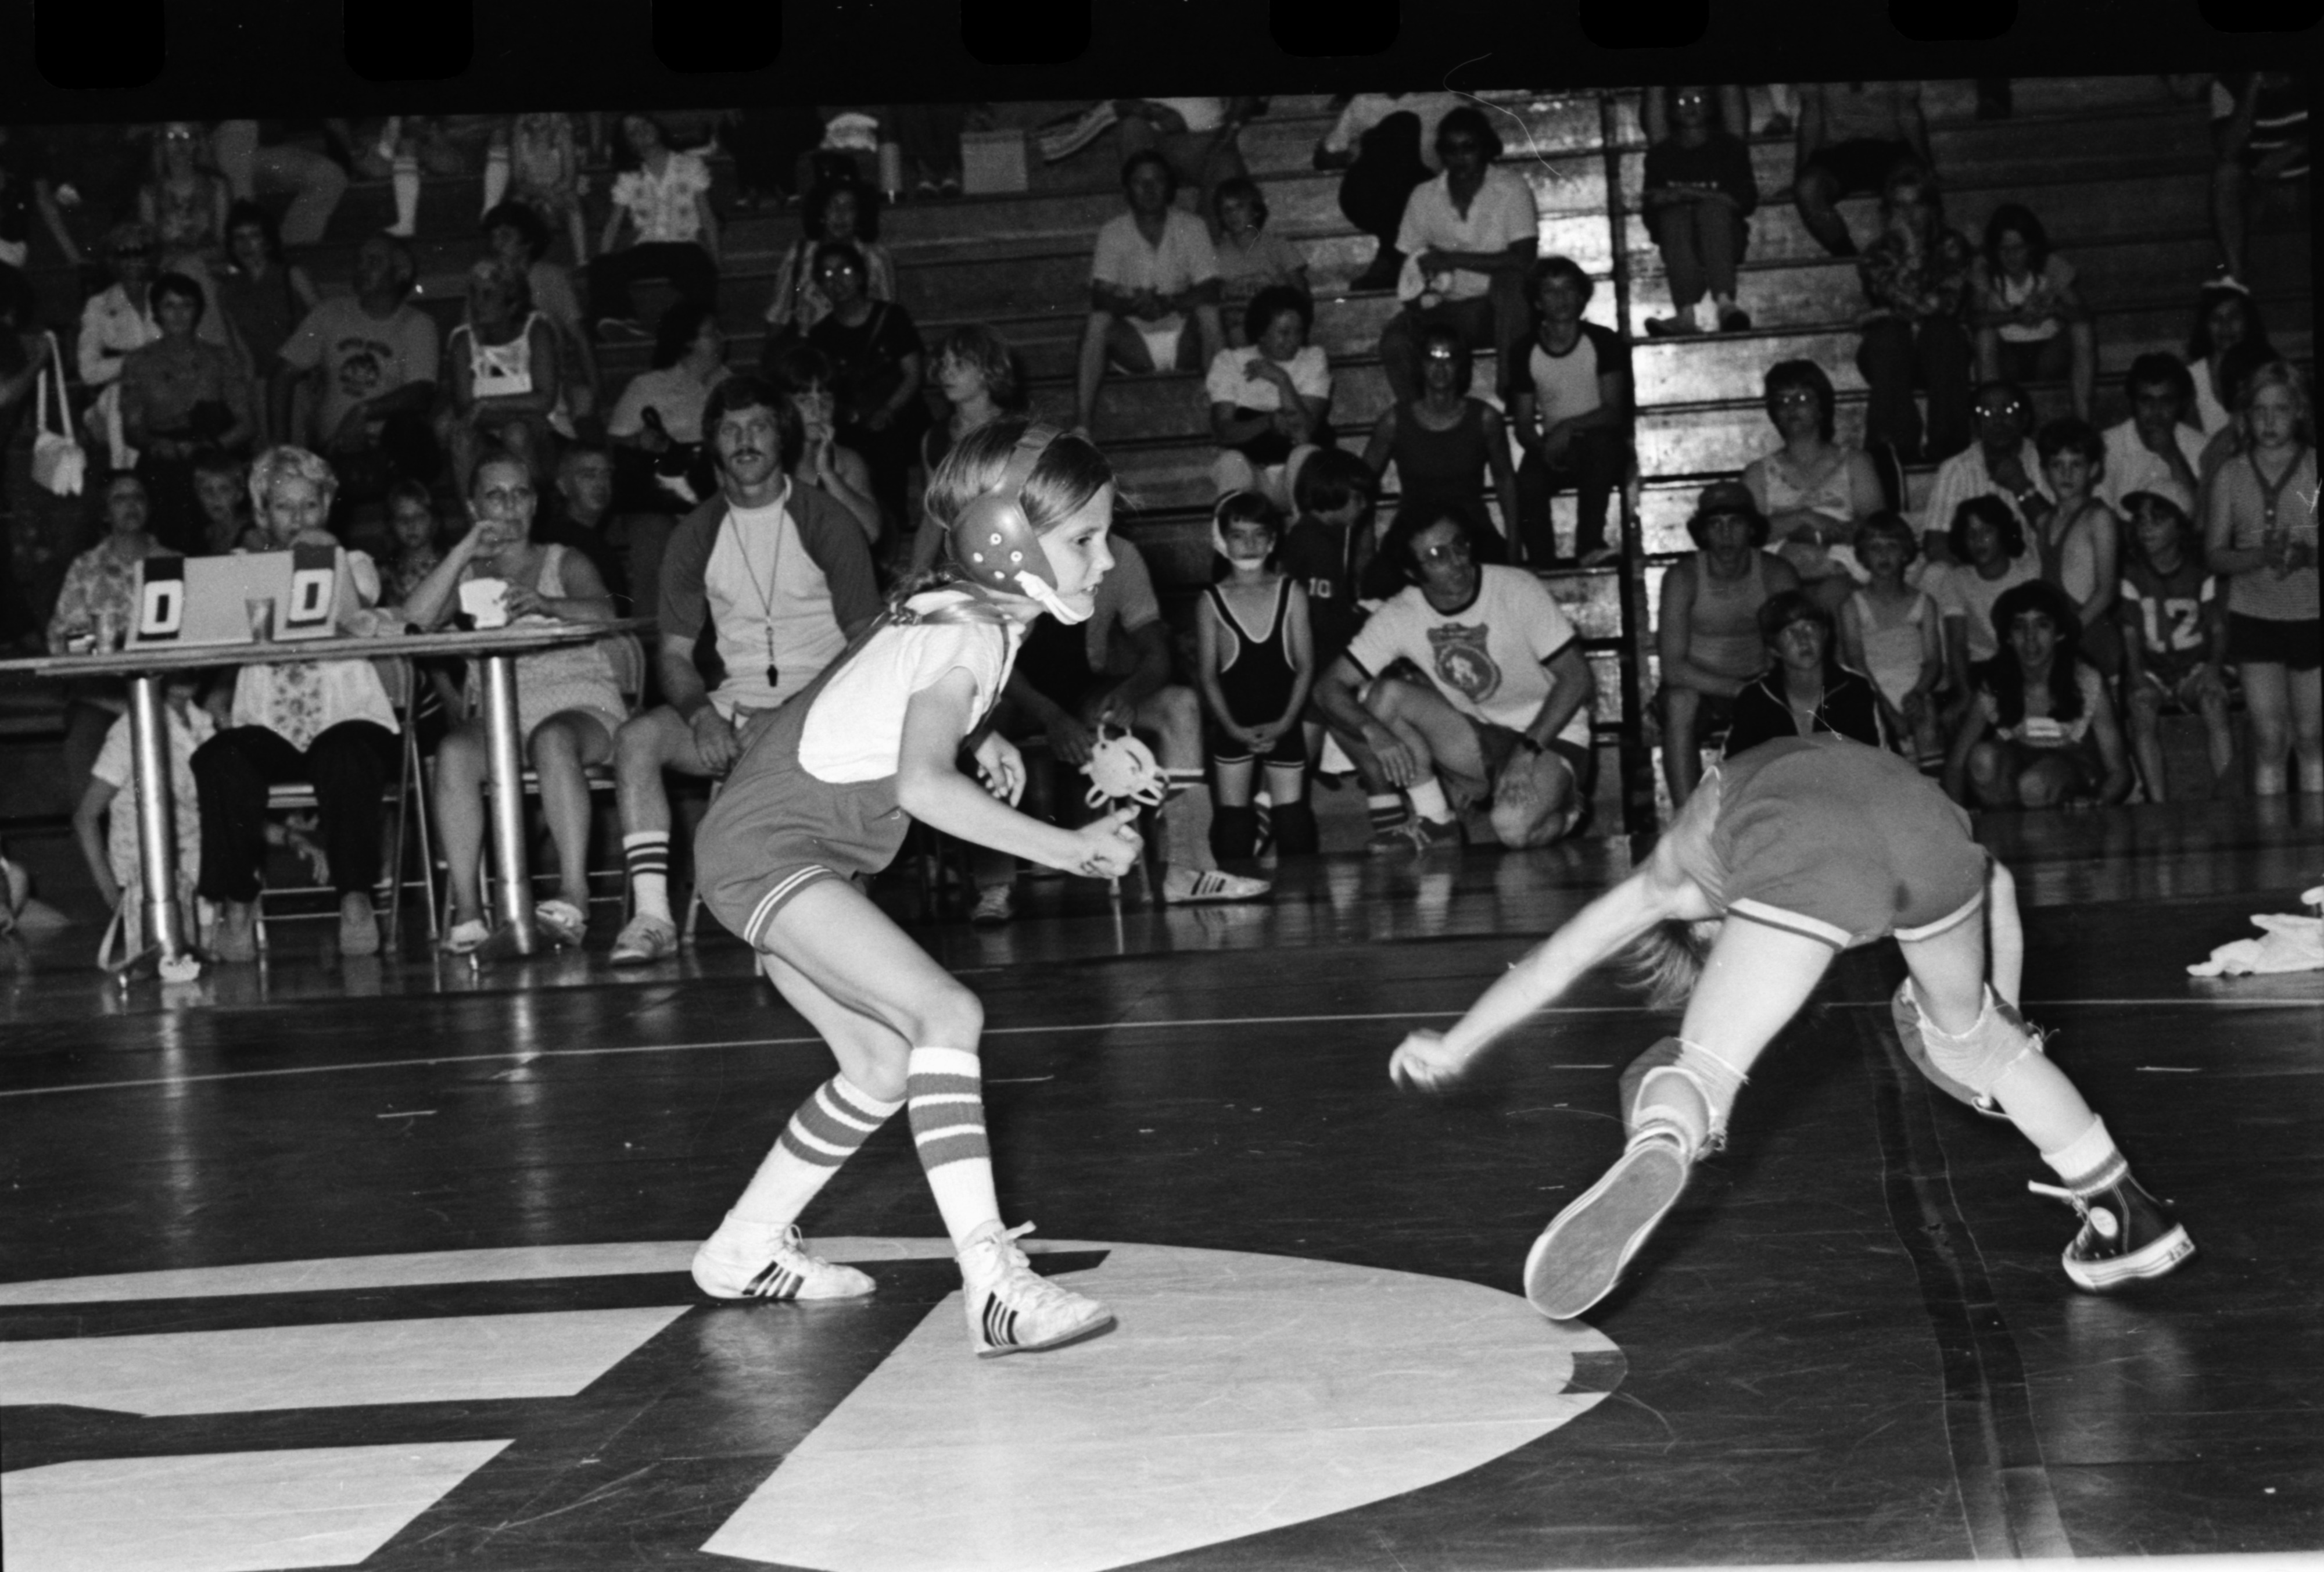 Tricia McNaughton Wrestles In The AAU Tournament At Bowen Fieldhouse, June 1975 image